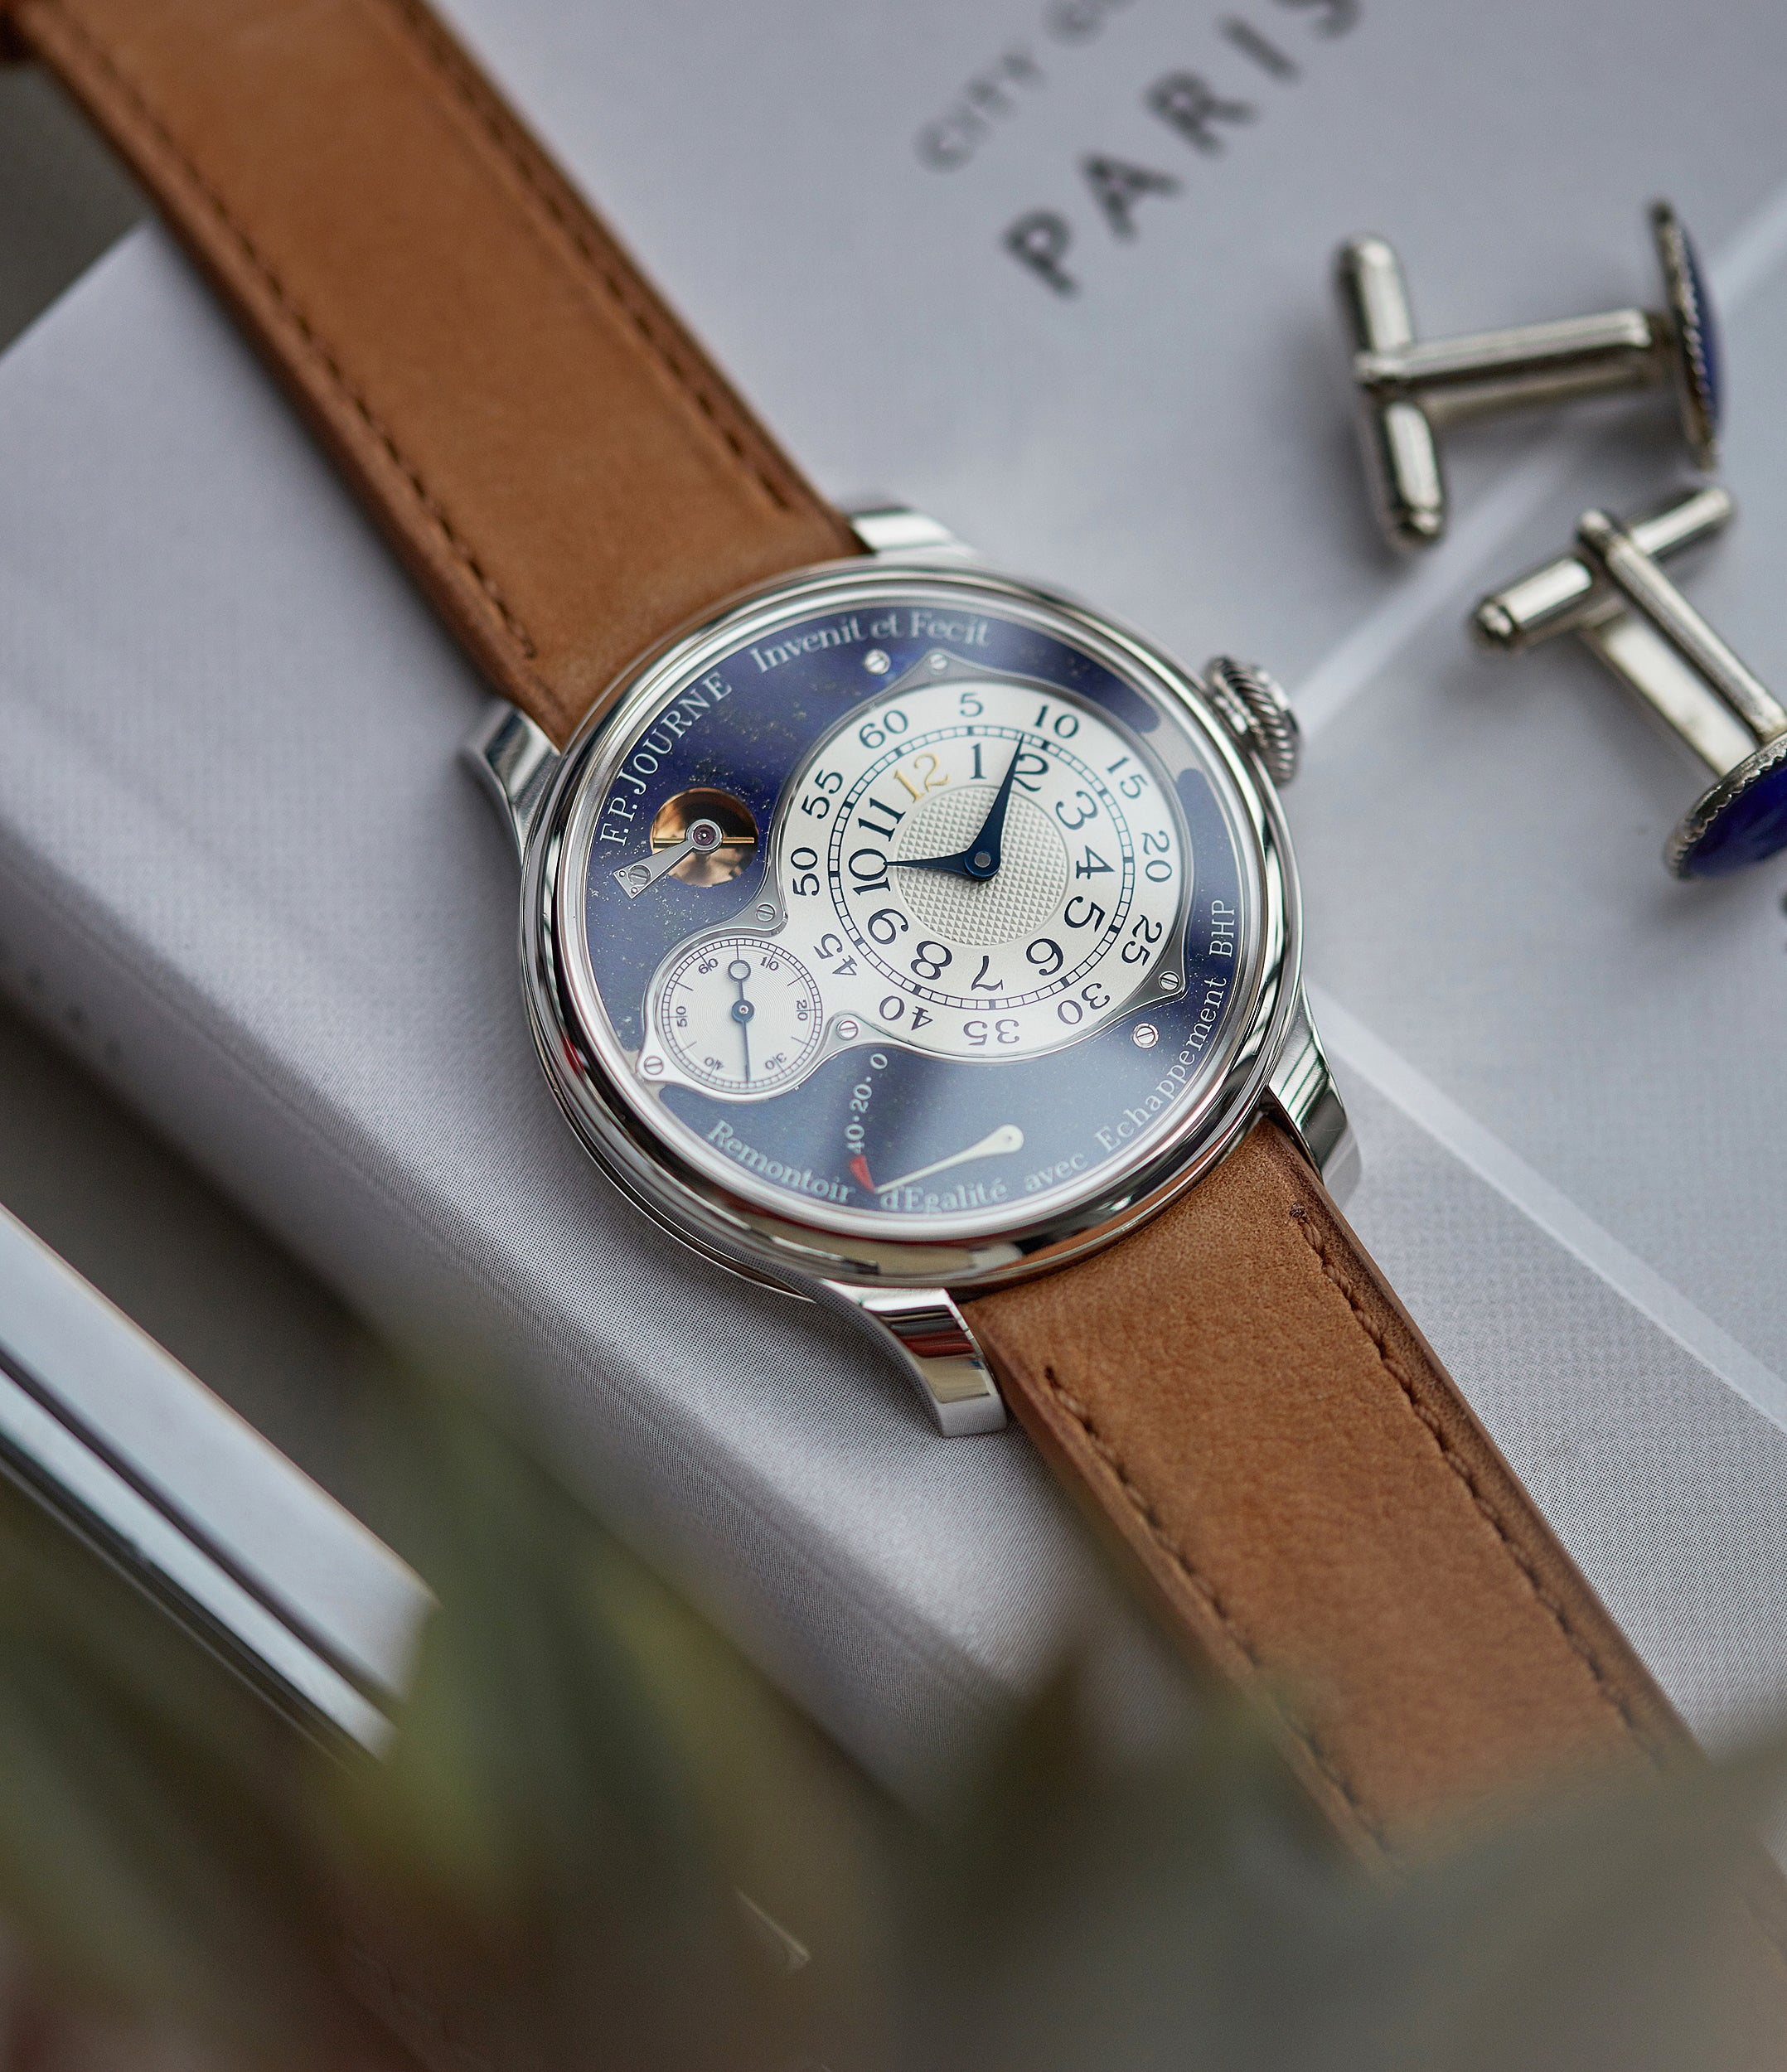 independent watchmaker F. P. Journe Chronometre Optimum Lapis Lazuli blue stone dial dress watch for sale A Collected Man London UK specialist independent watchmaker